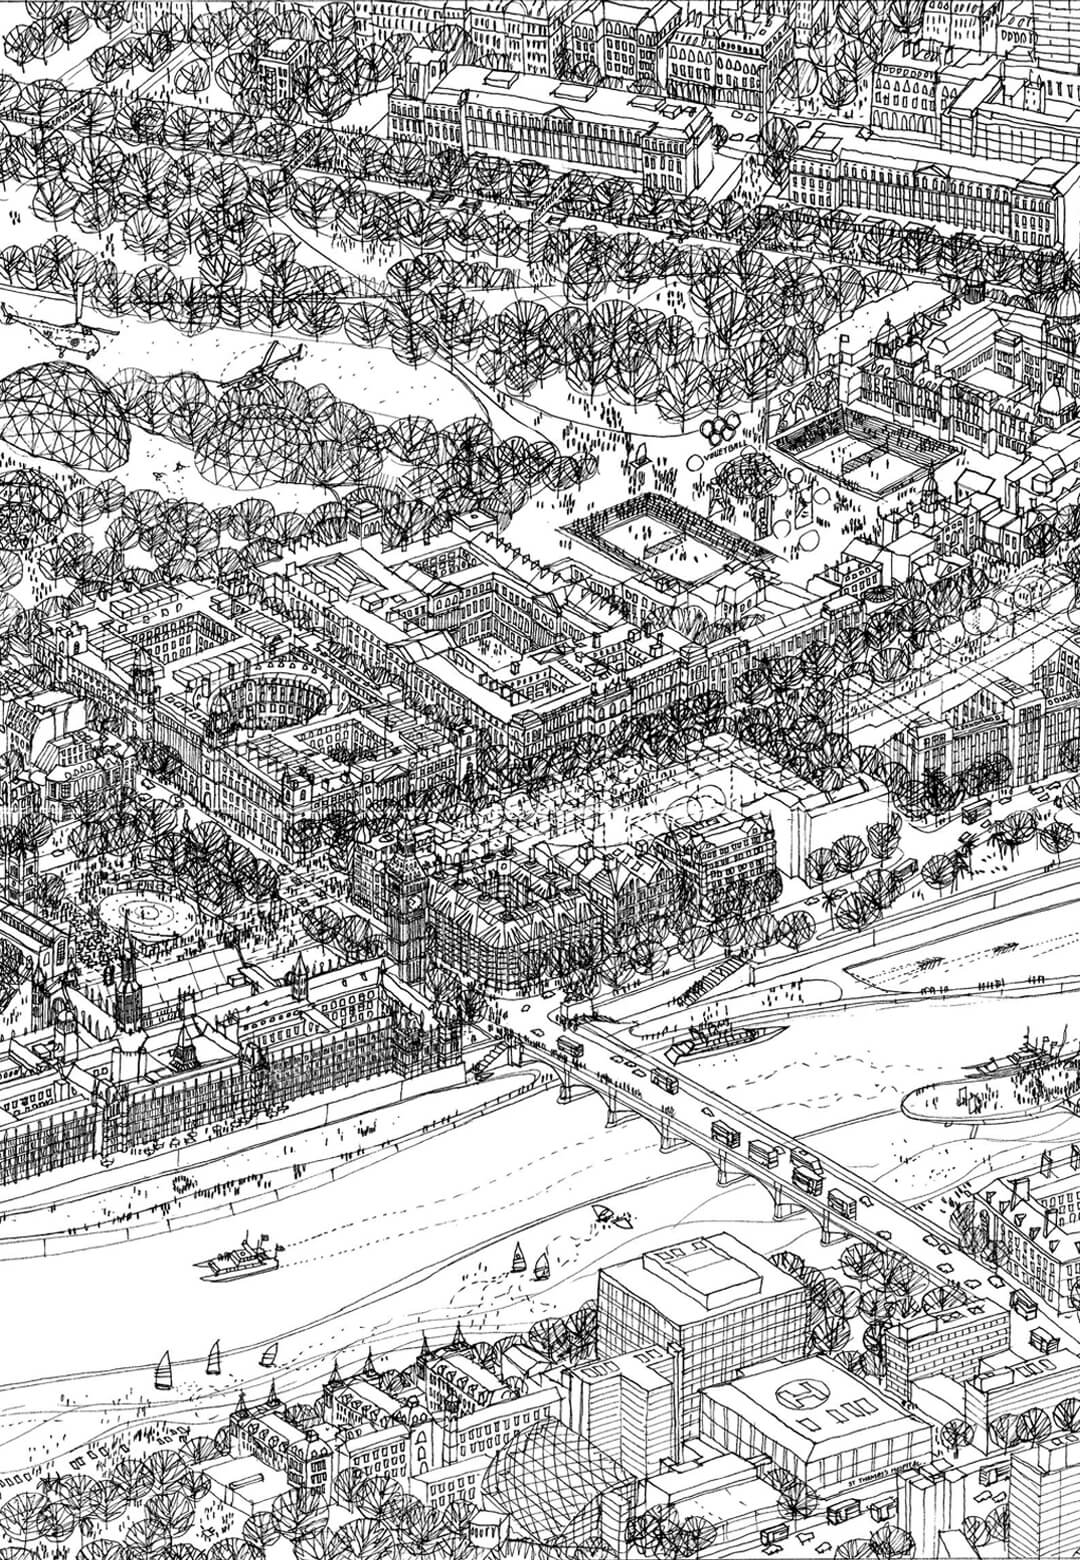 Aerial vision for London, on paper